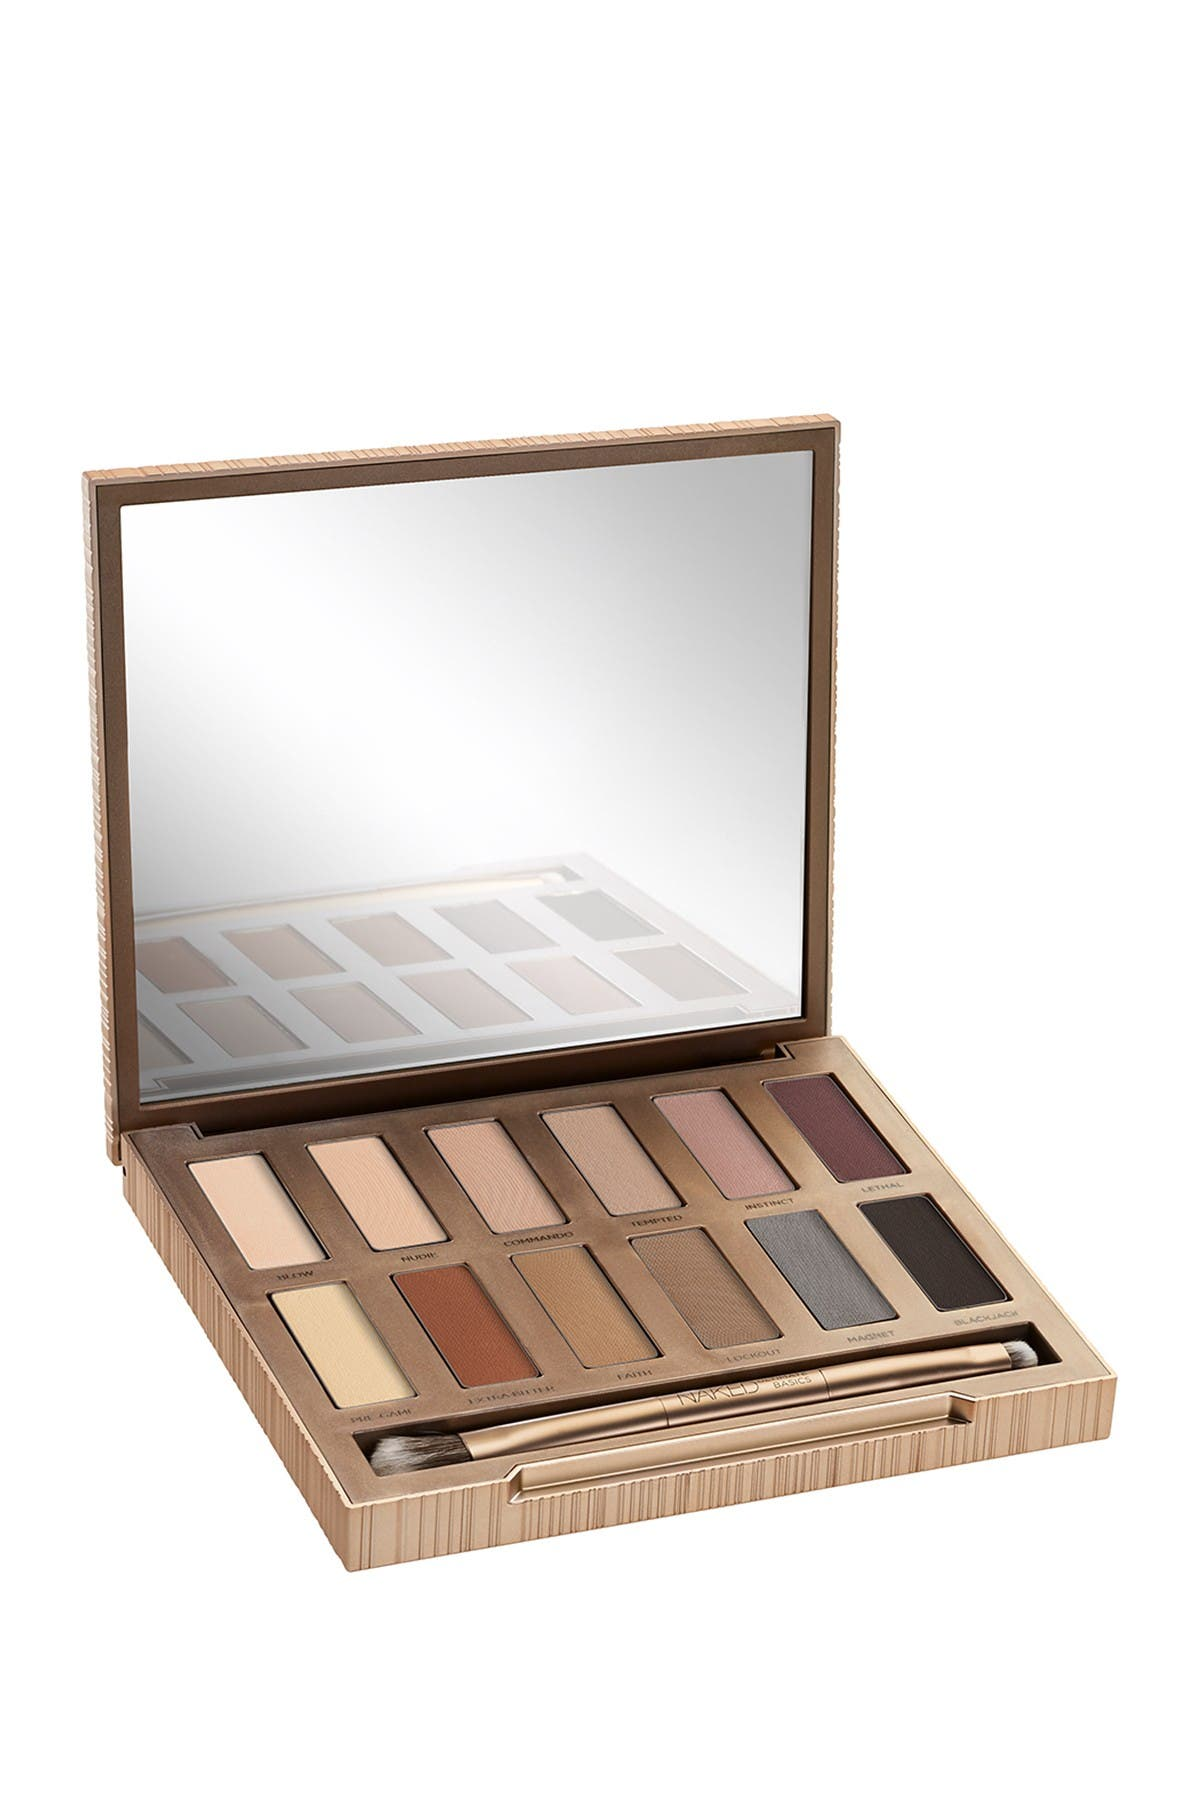 Image of Urban Decay Naked Ultimate Basics Eyeshadow Palette